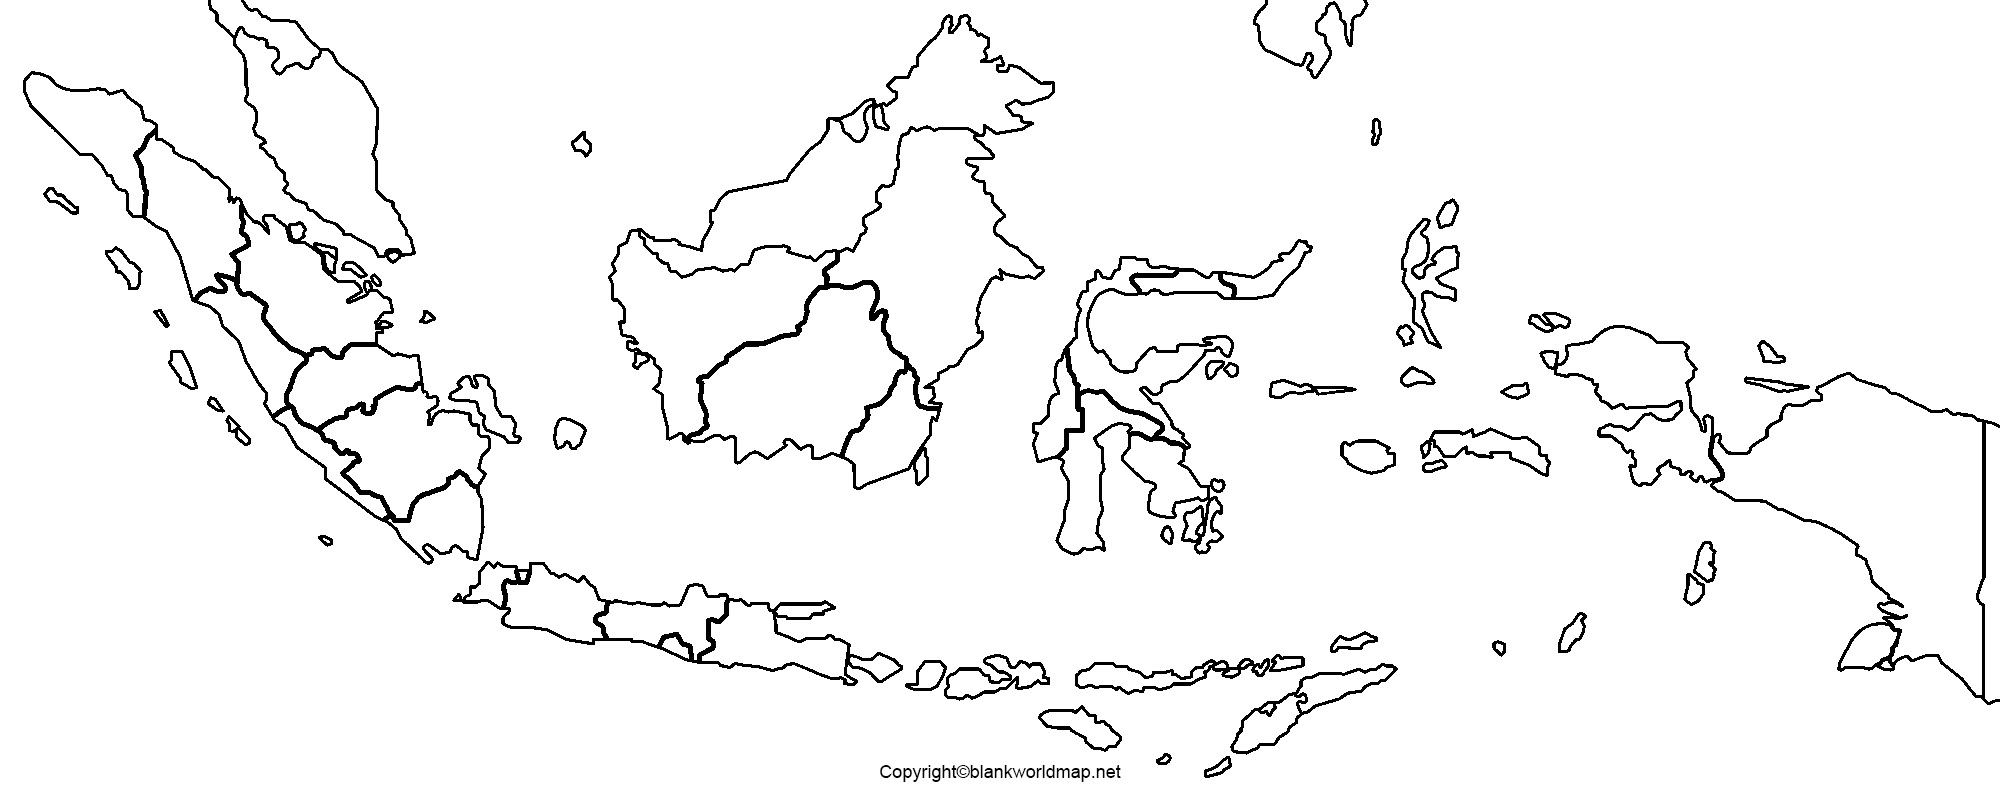 Blank Indonesia Map